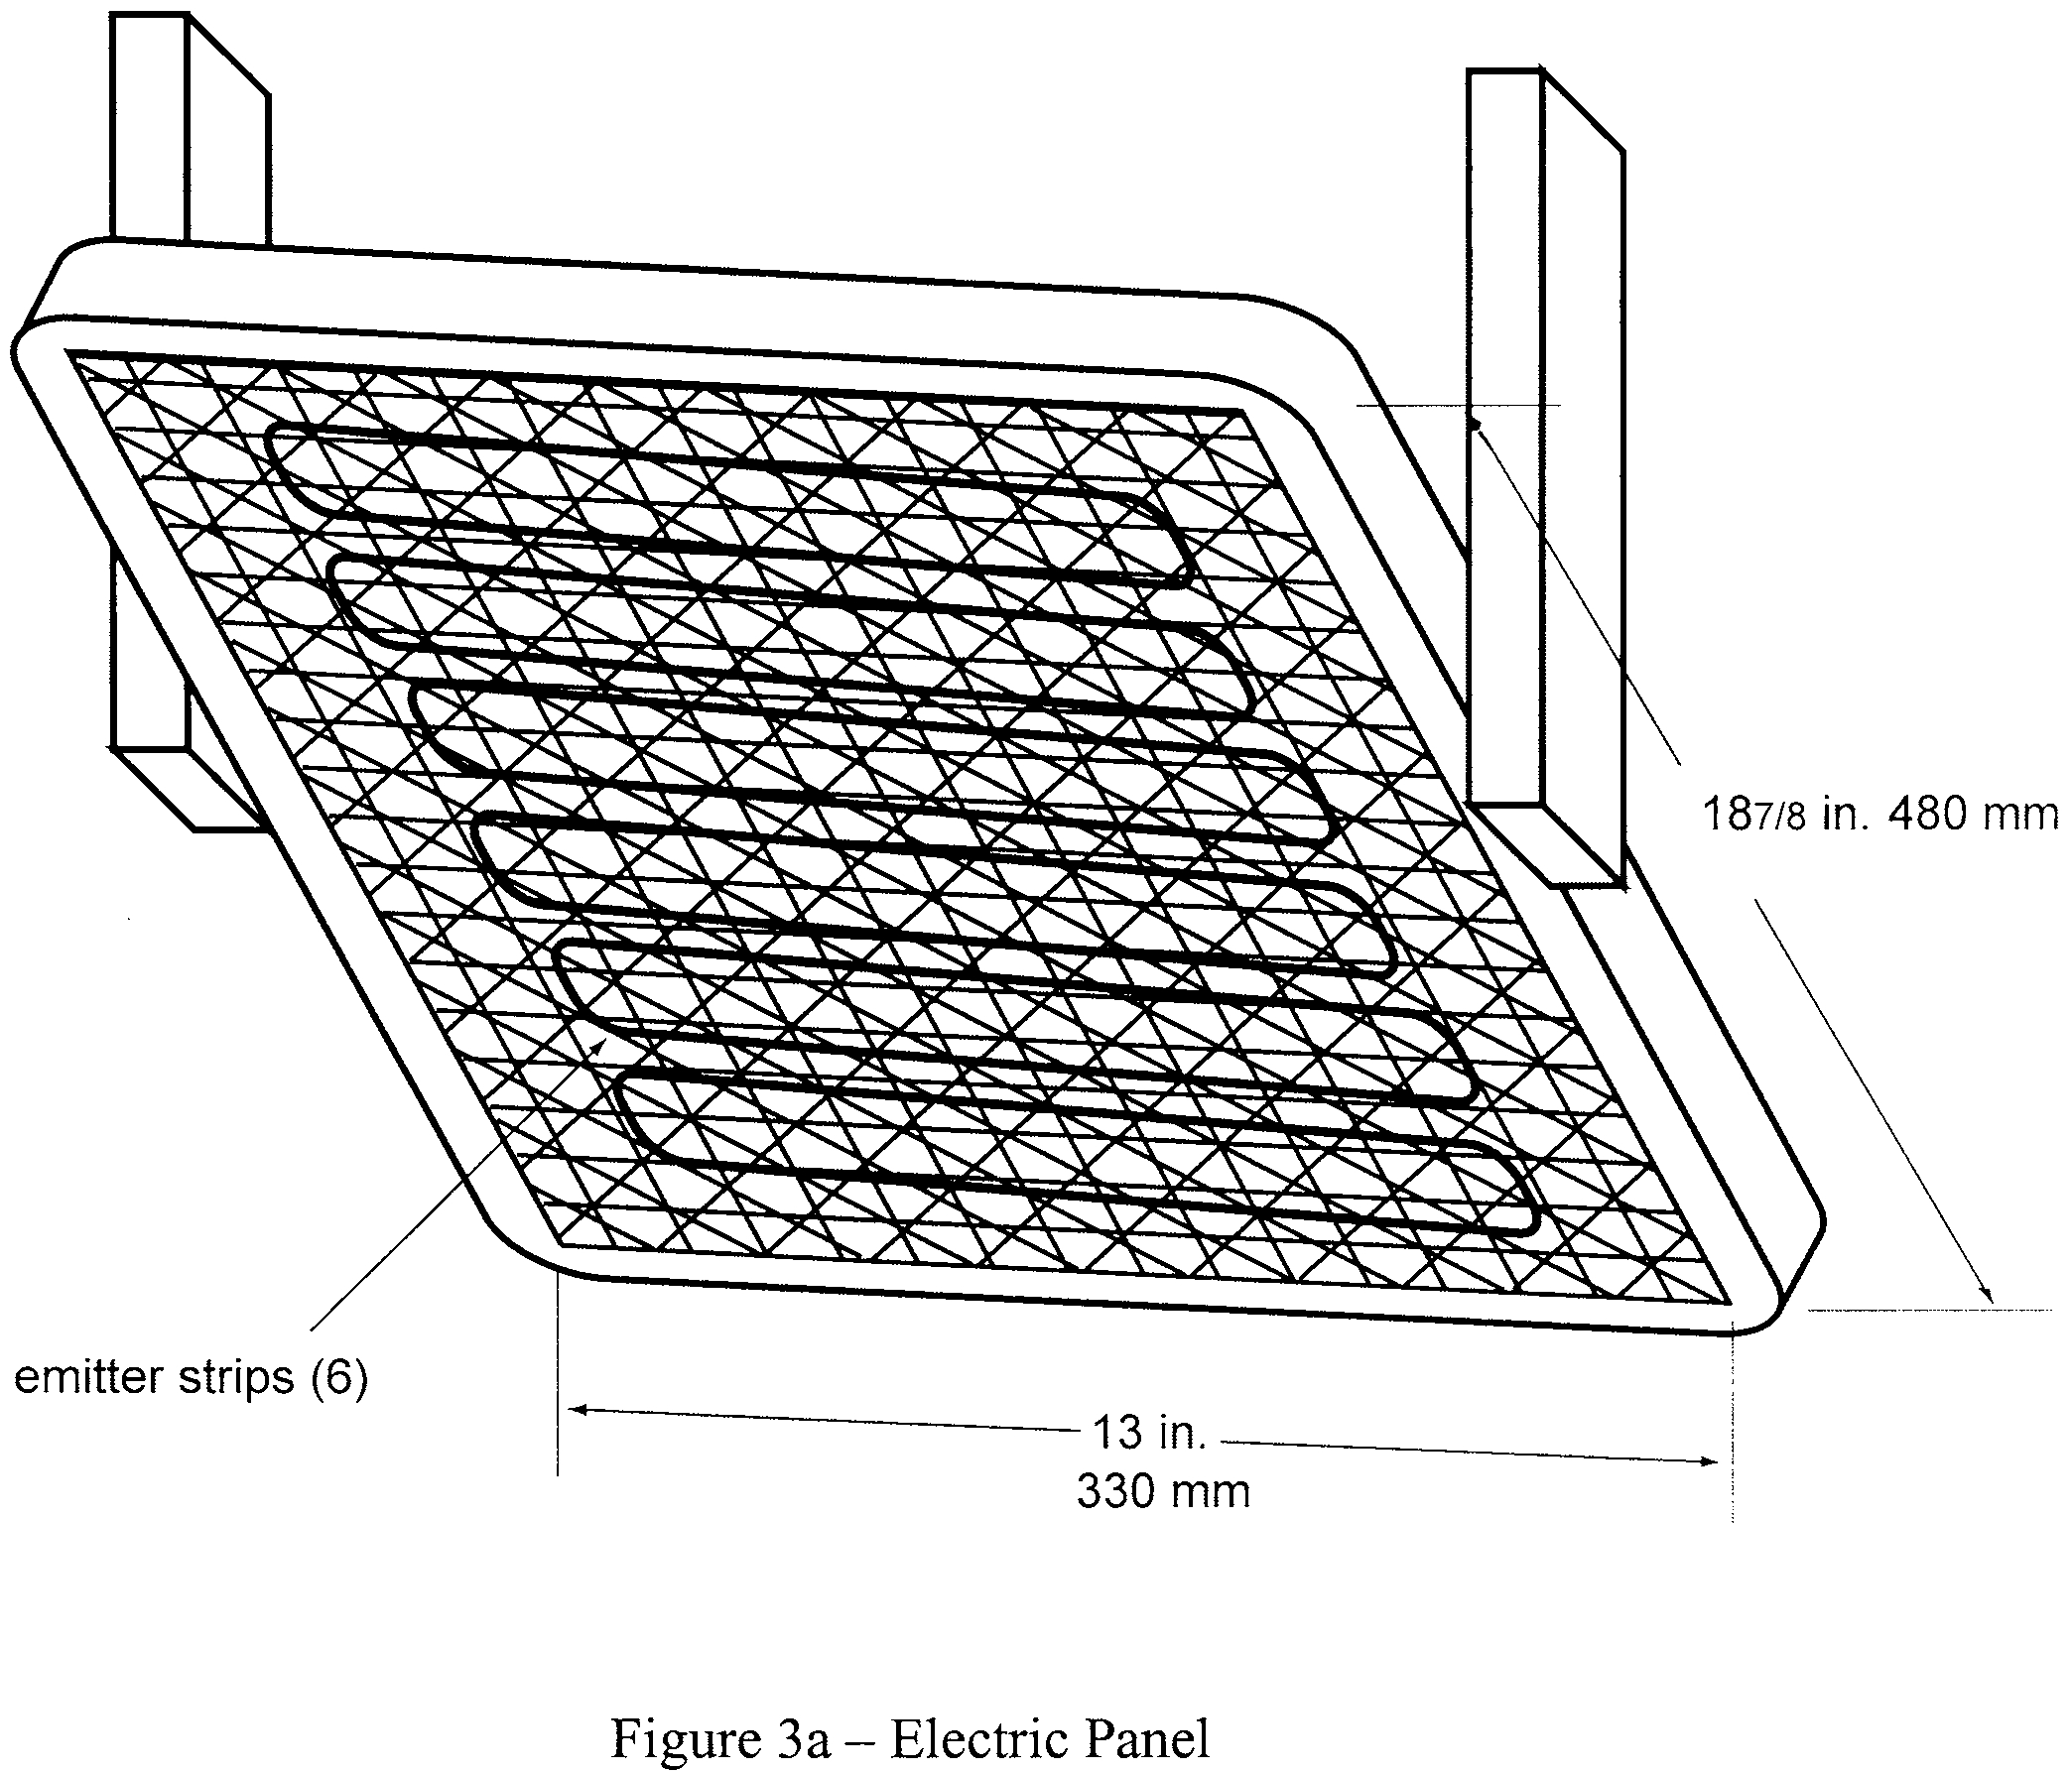 Graphic of (2) Radiant heat source. Mount the radiant heat energy source in a cast iron frame or equivalent. An electric panel must have six, 3-inch wide emitter strips. The emitter strips must be perpendicular to the length of the panel. The panel must have a radiation surface of 127/8 by 181/2 inches (327 by 470 mm). The panel must be capable of operating at temperatures up to 1300 °F (704 °C). An air propane panel must be made of a porous refractory material and have a radiation surface of 12 by 18 inches (305 by 457 mm). The panel must be capable of operating at temperatures up to 1,500 °F (816 °C). See figures 3a and 3b.